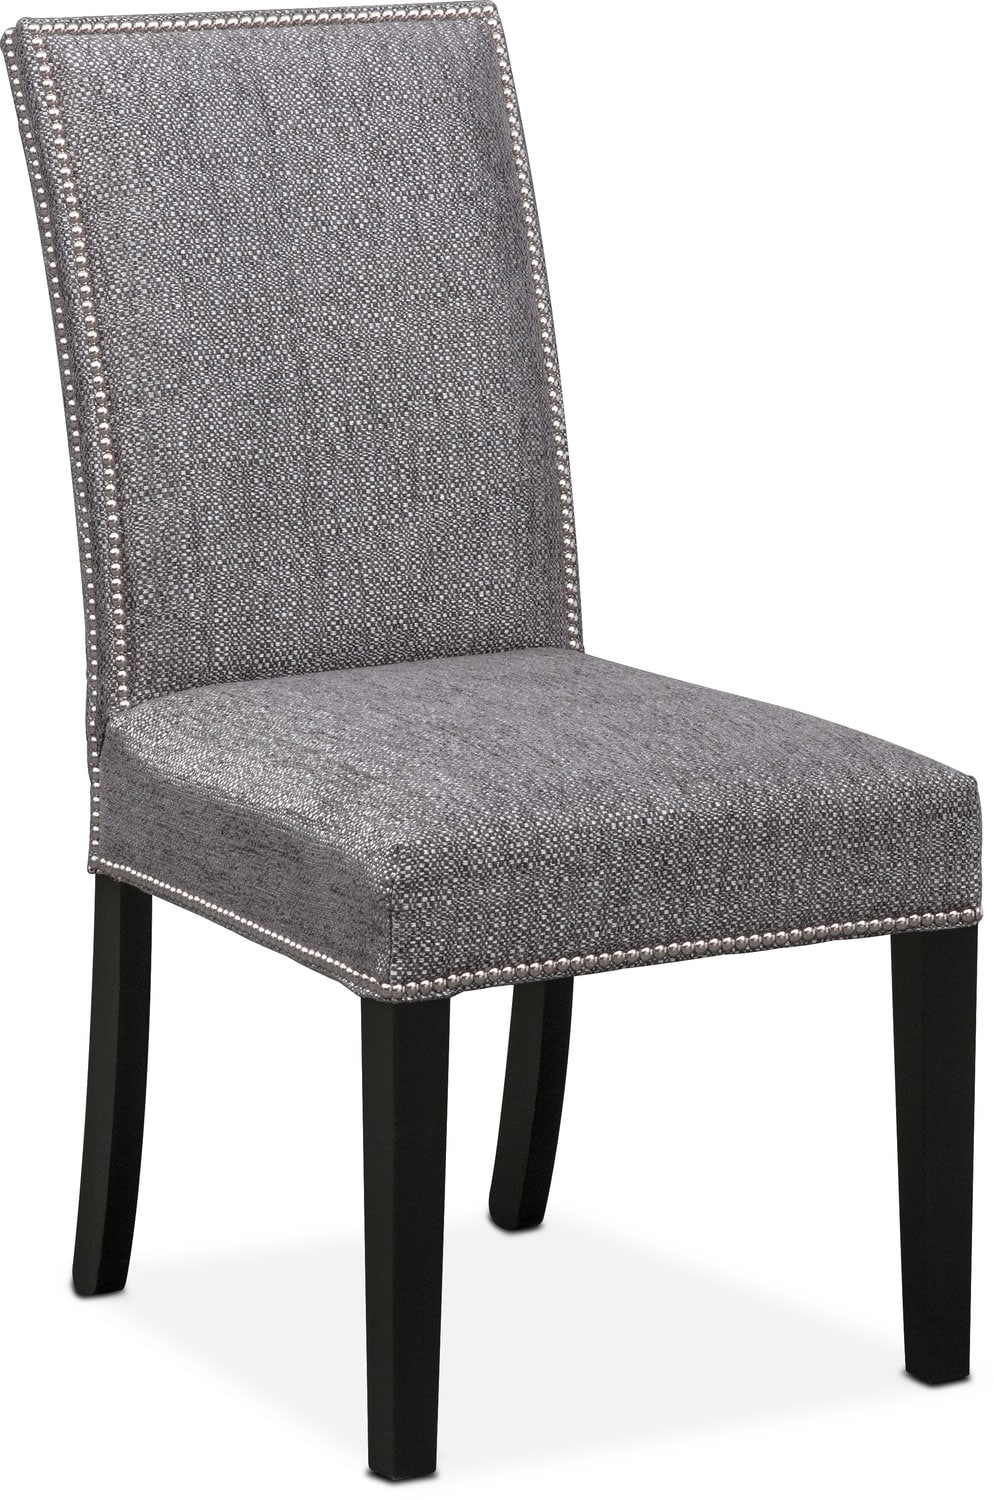 Dining Room Furniture - Irvine Side Chair - Graphite